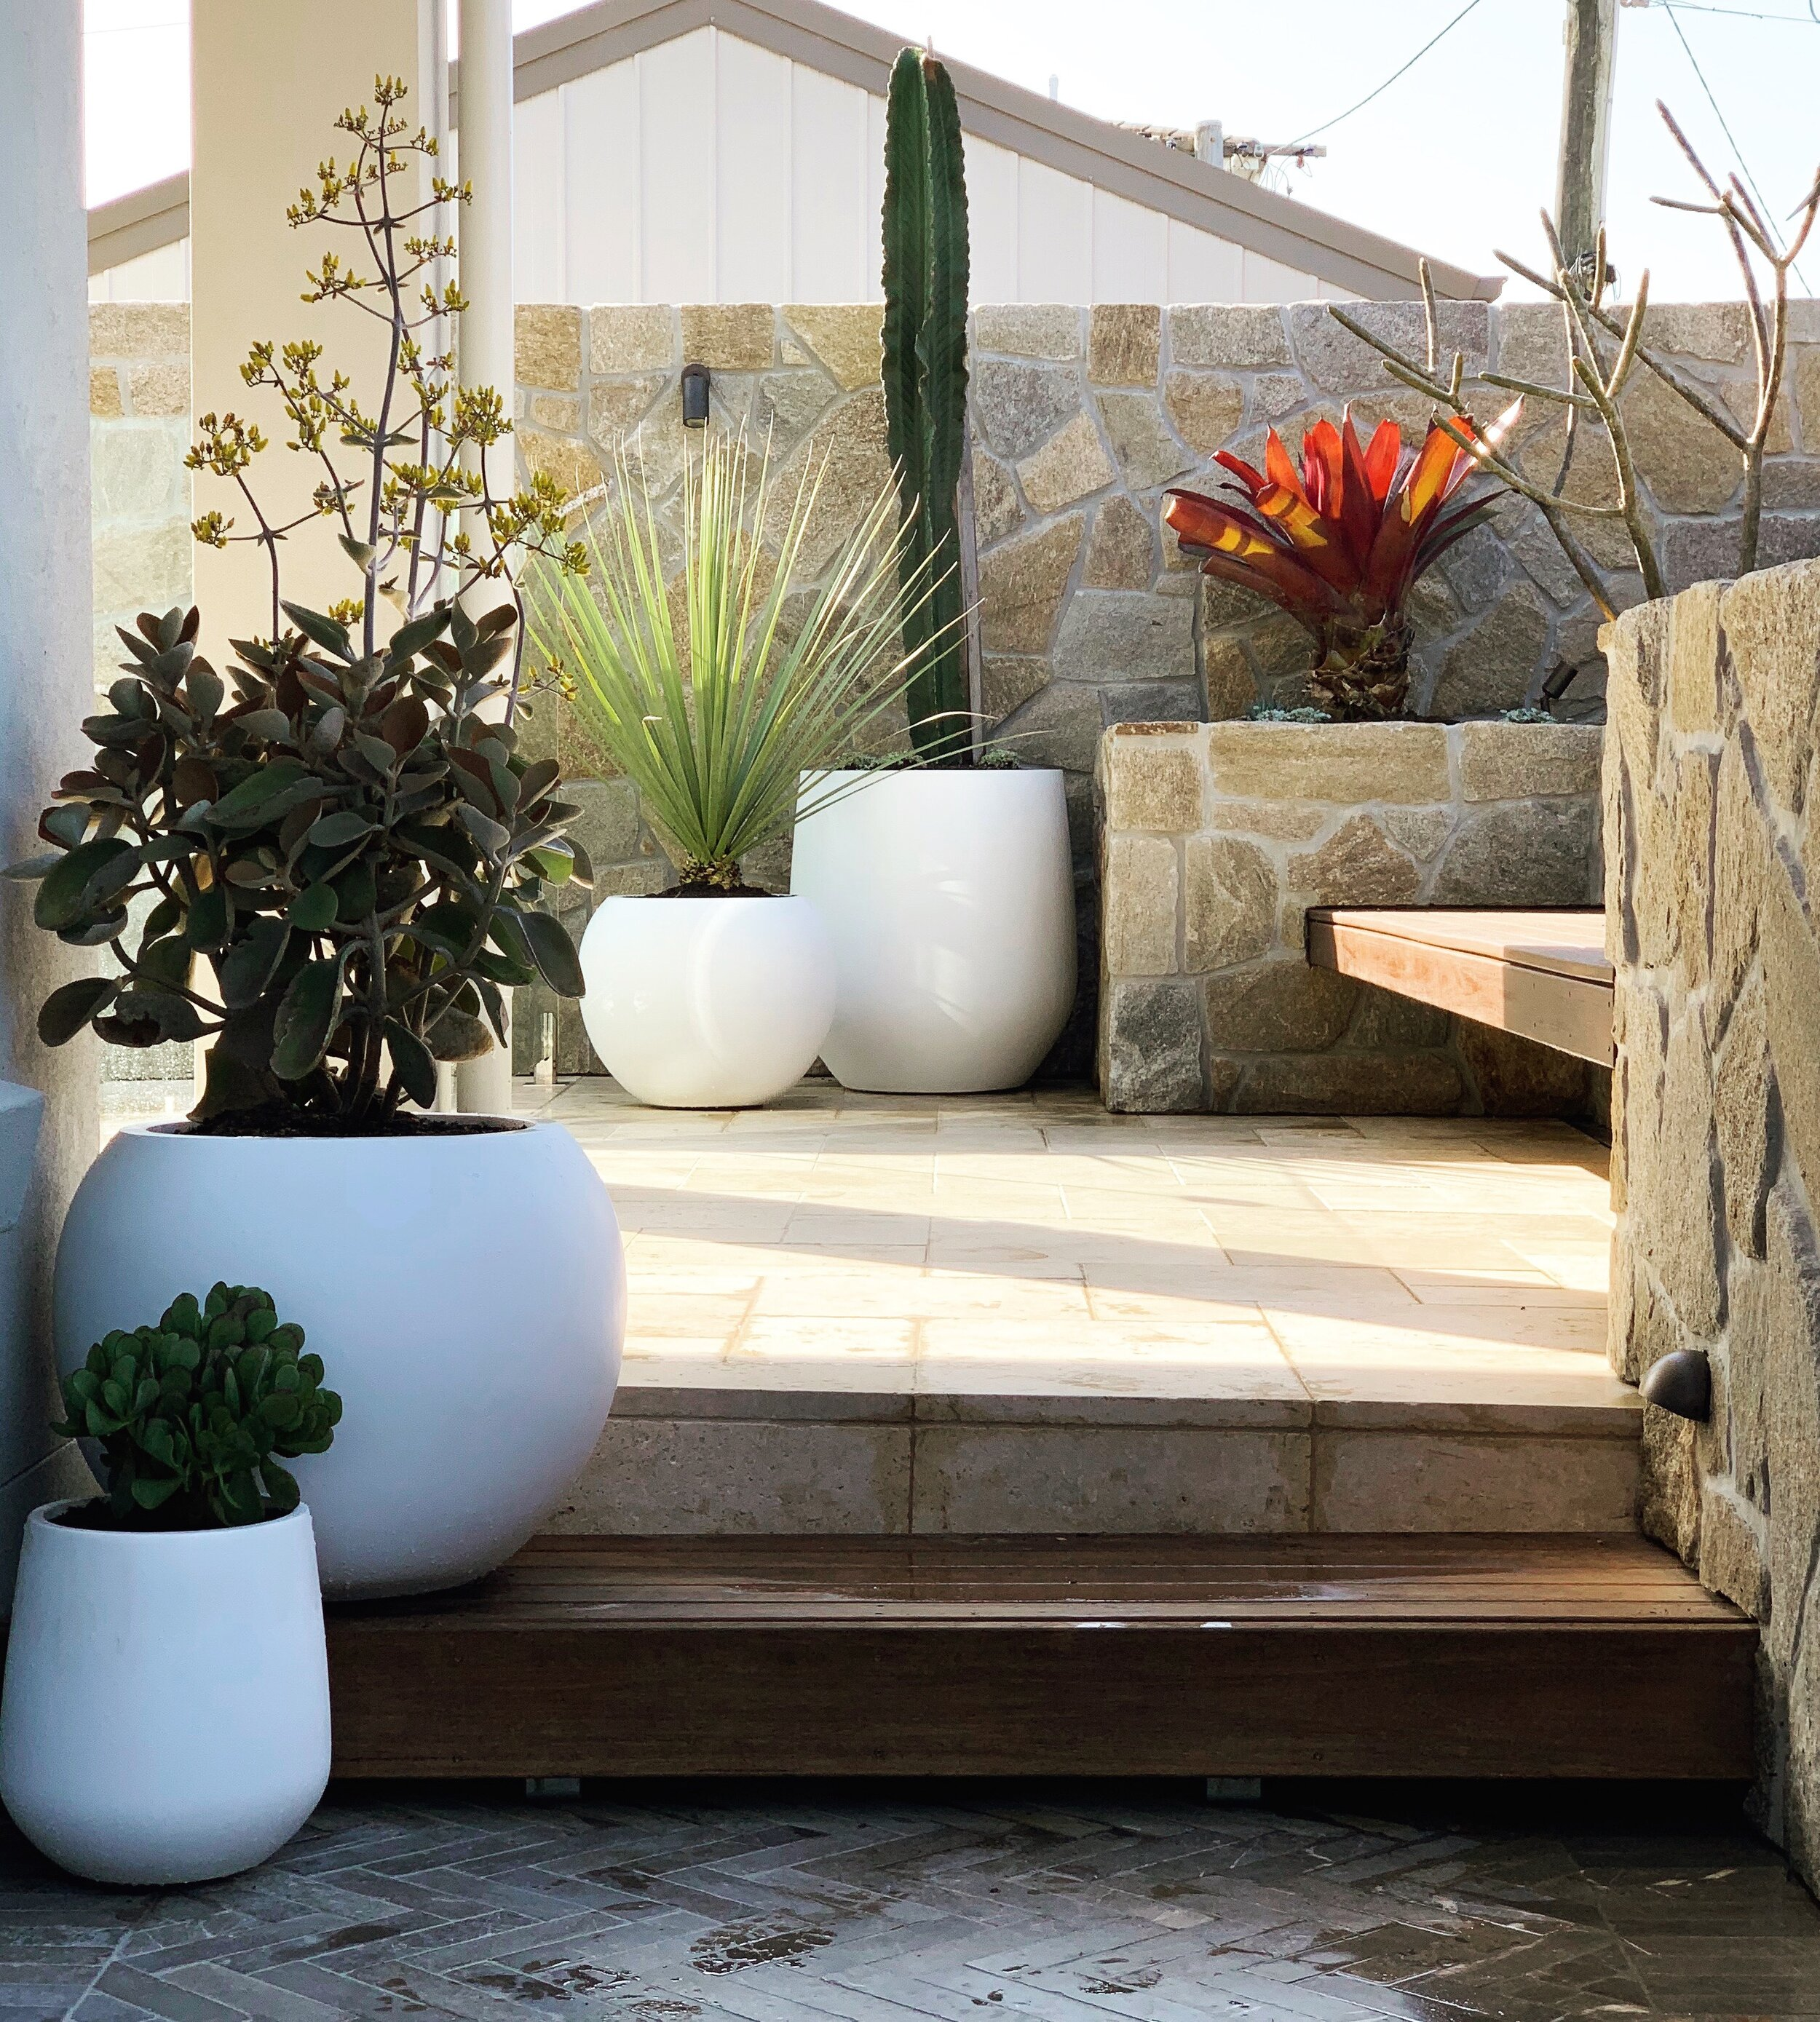 Want to chat? - we would love to talk with you about your outdoor design, use our contact us form below